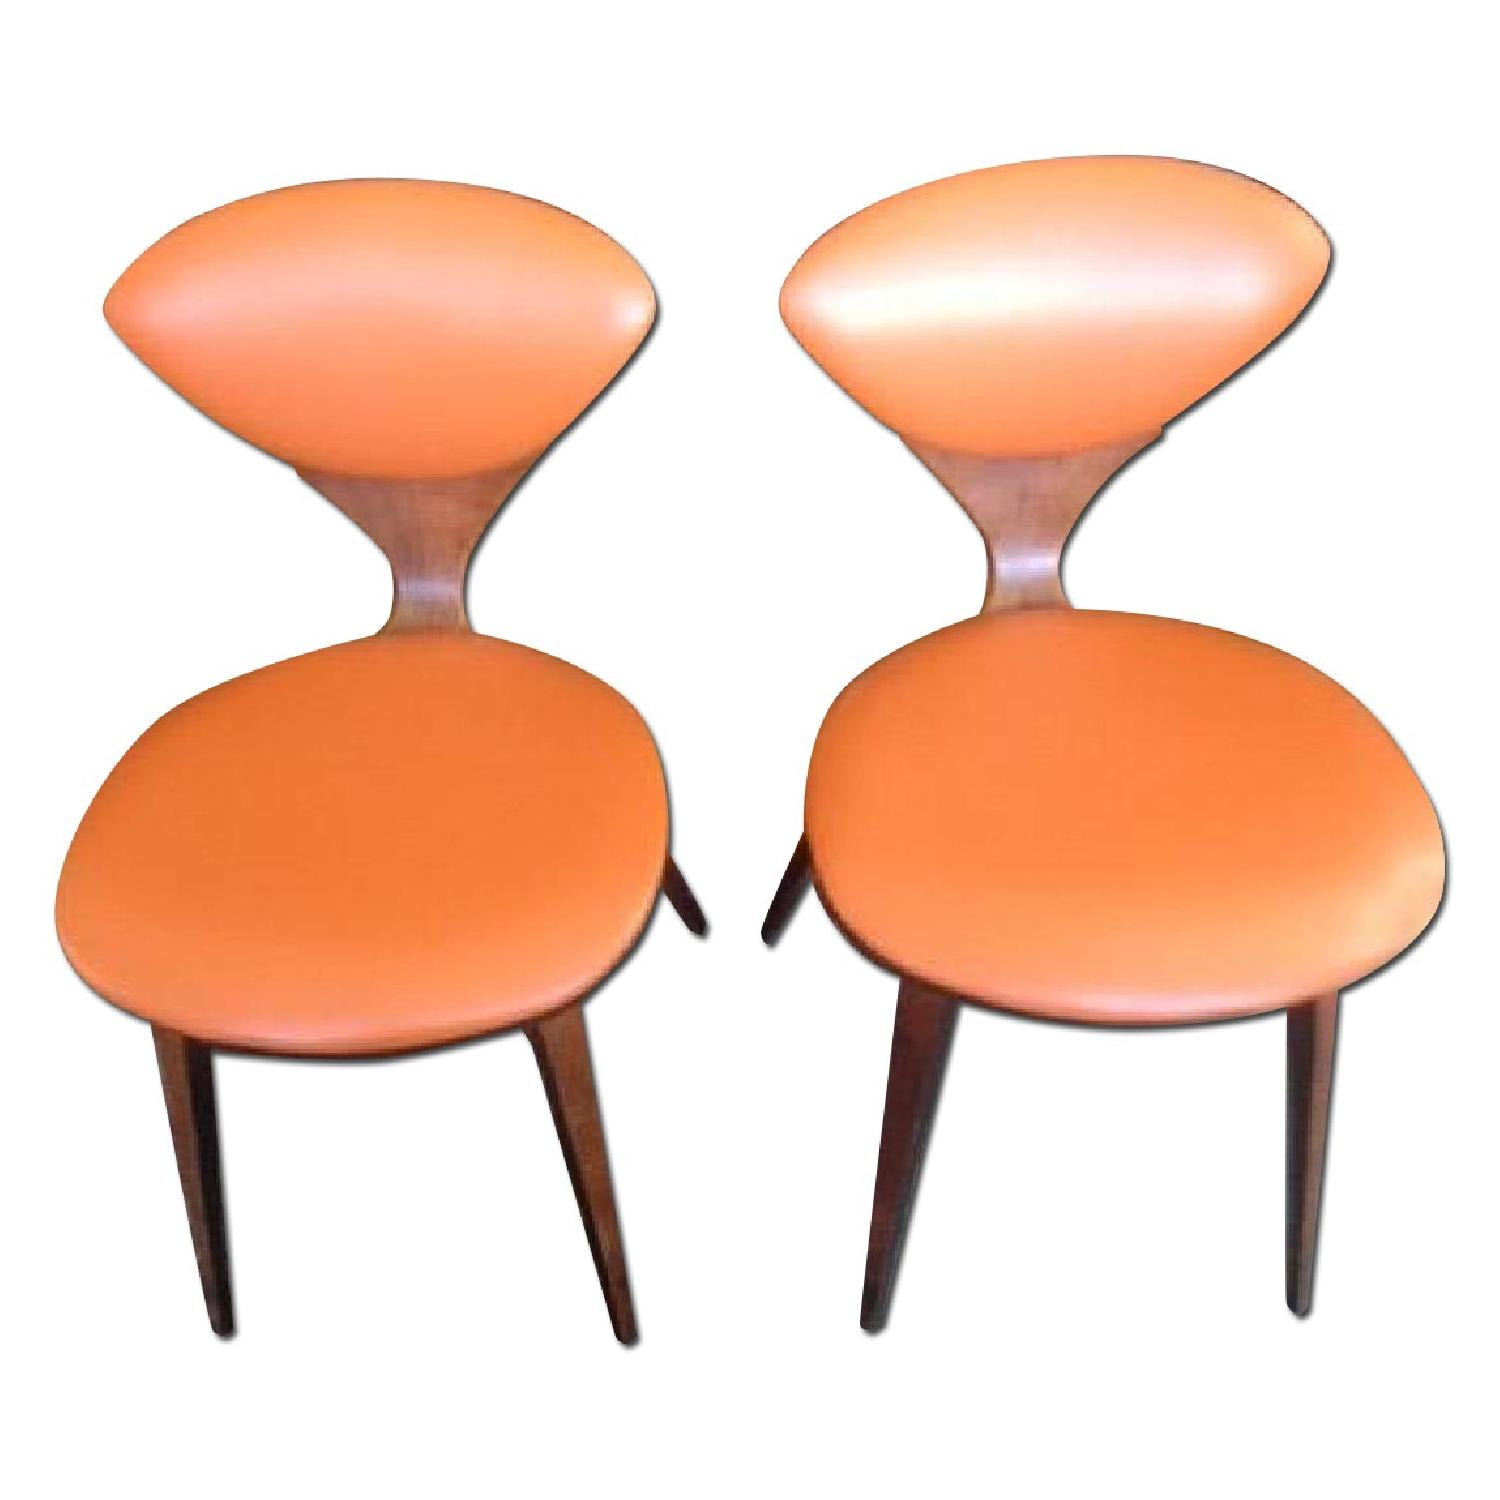 Norman Cherner Plycraft Side Chairs - image-0